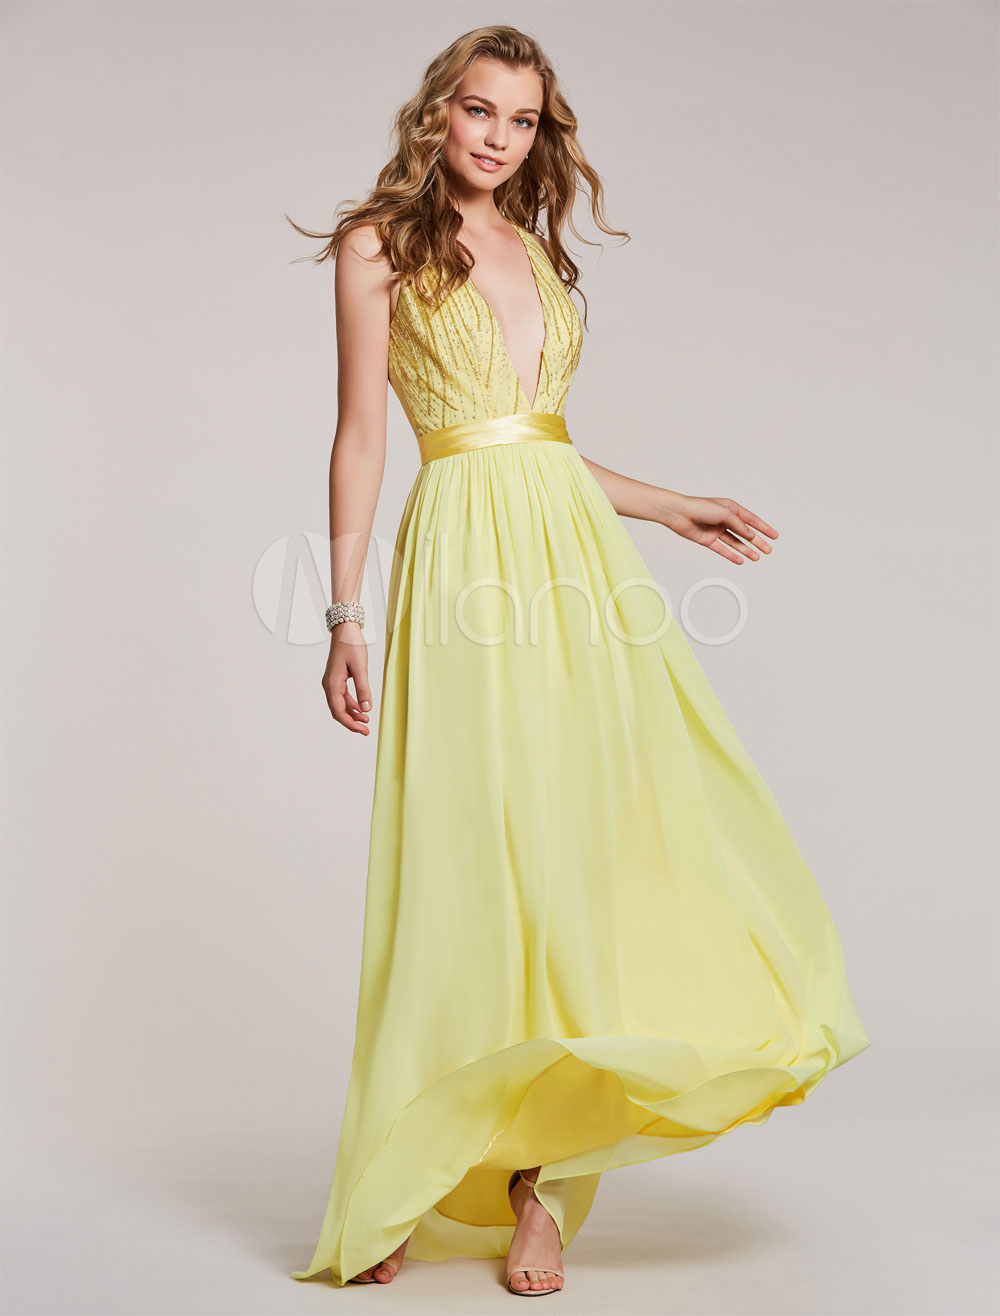 Buy Daffodil Prom Dresses Plunging V Neck Chiffon Long Floor Length Illusion Embroidered Sash Pleated Formal Party Dress for $83.59 in Milanoo store